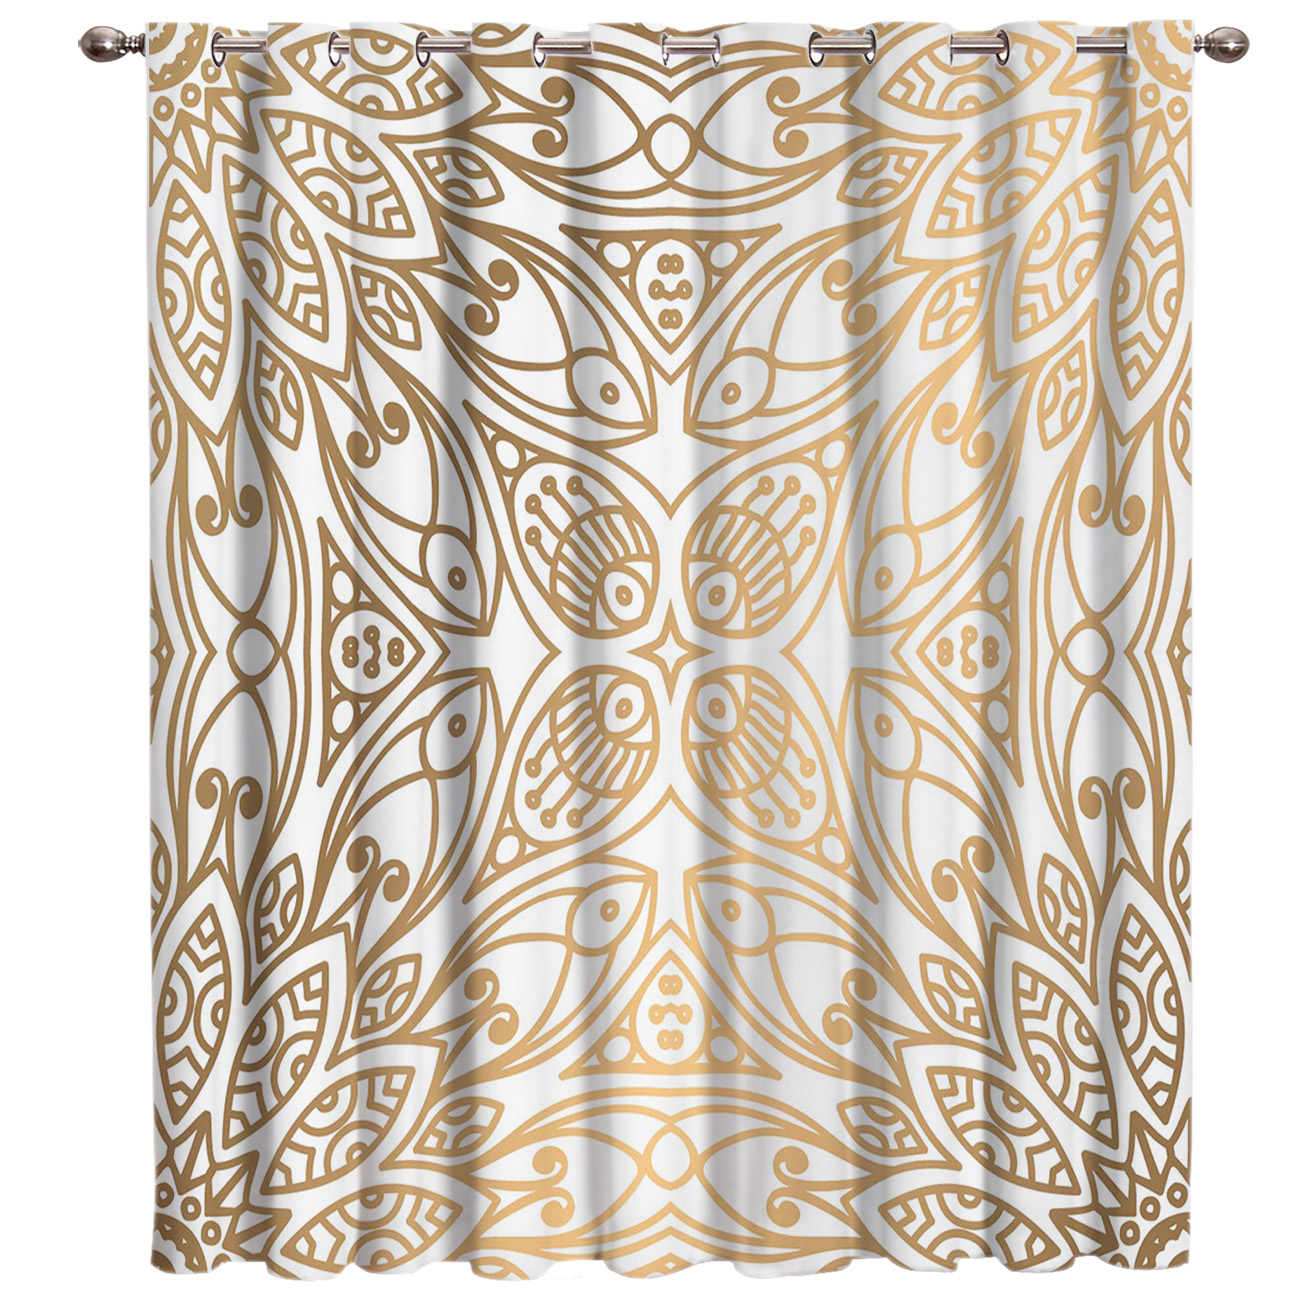 Gold Moroccan Pattern Damask Ethnic Window Treatments Curtains